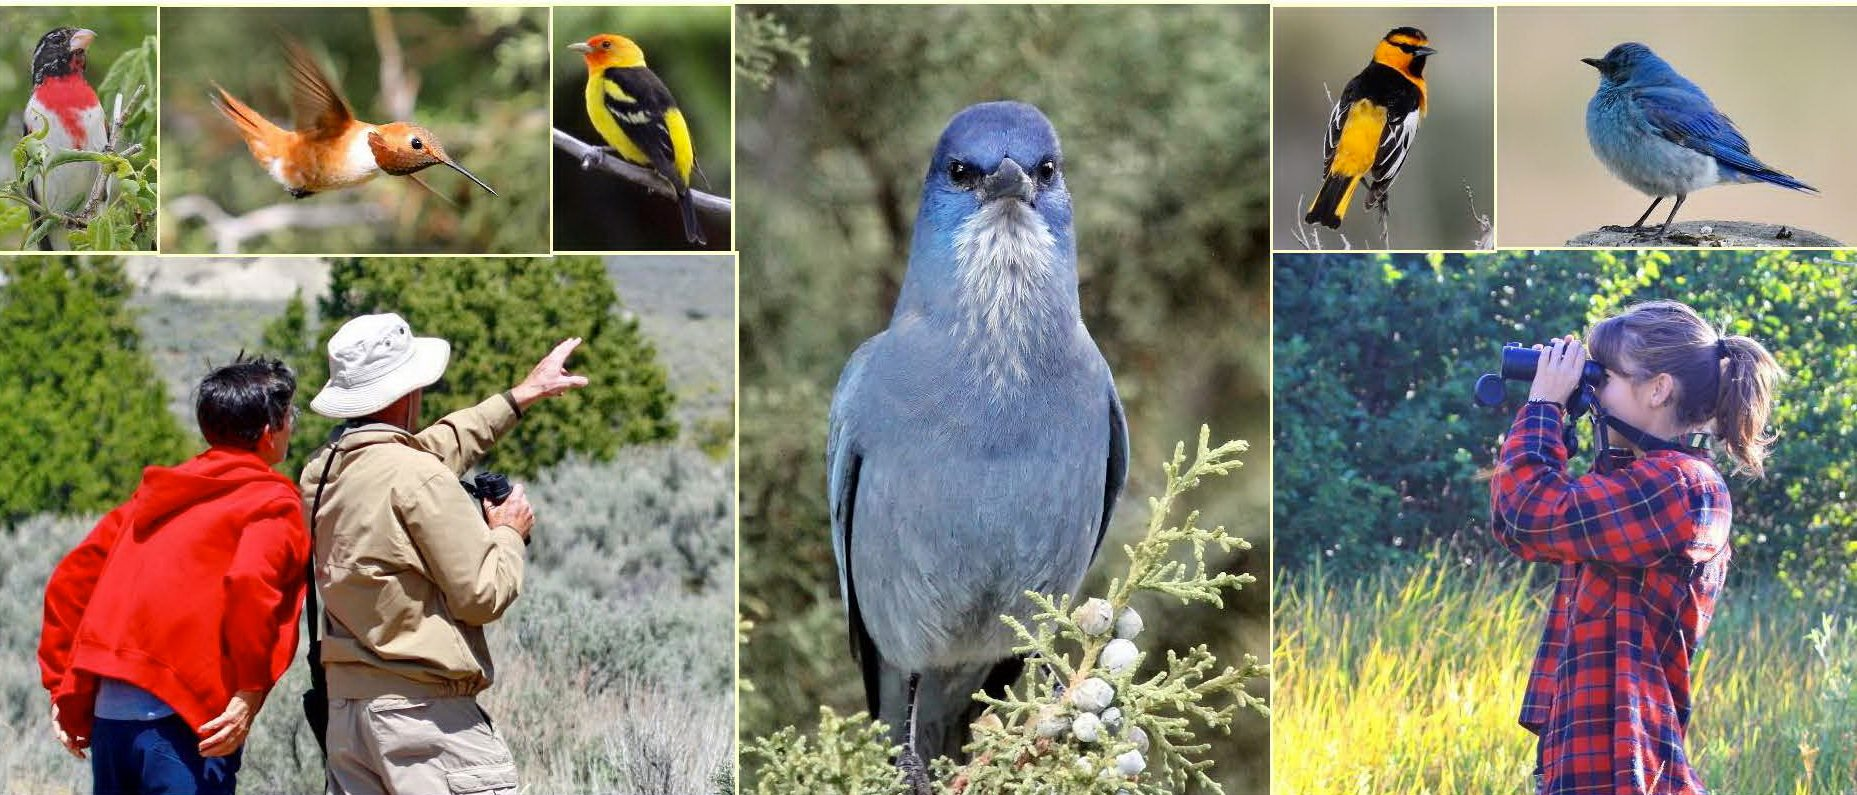 Collage of various birds and people birding at Castle Rocks/City of Rocks